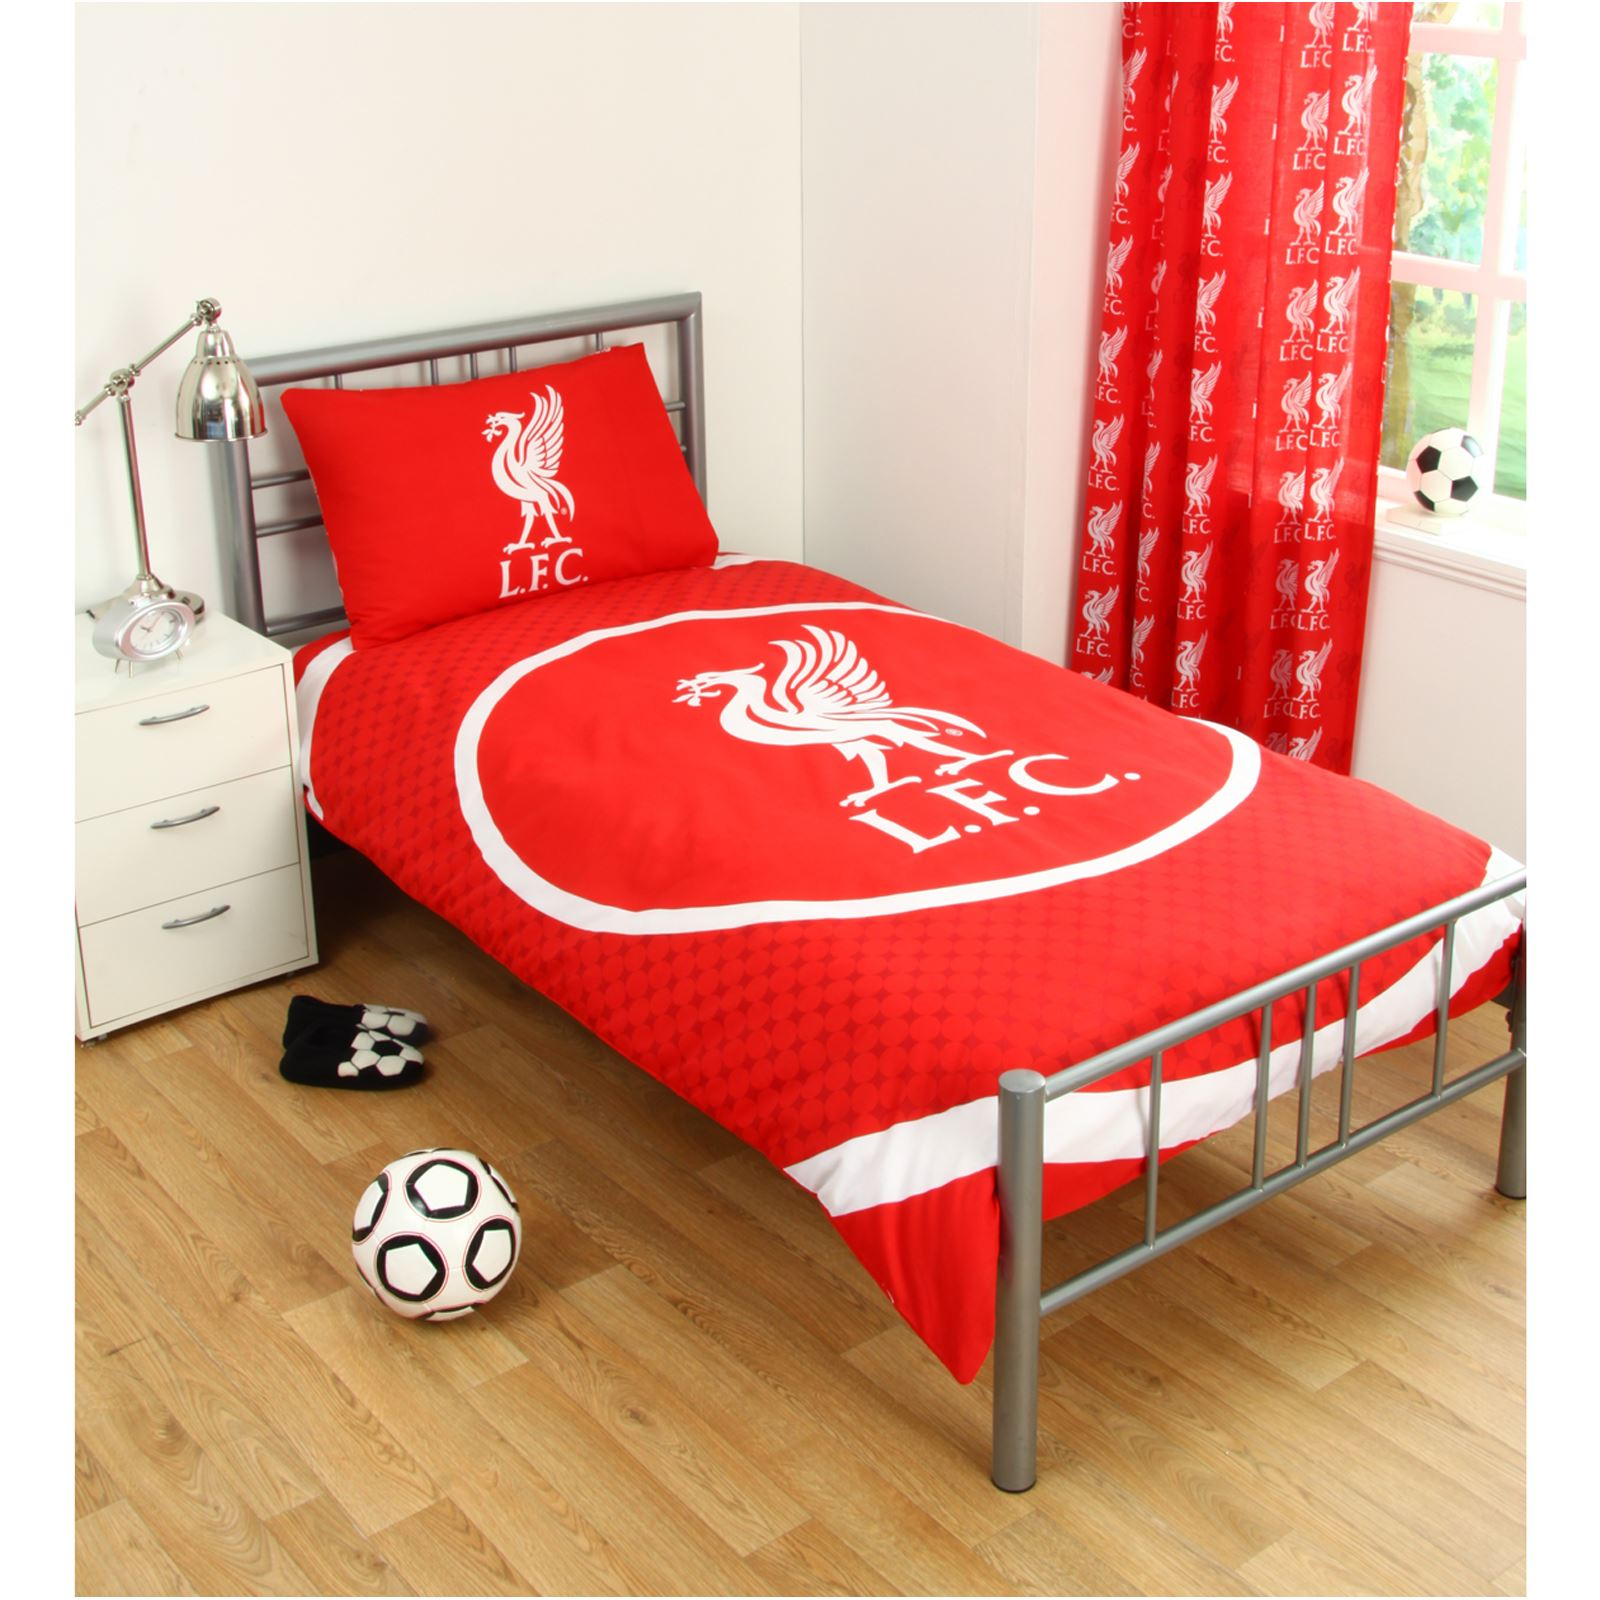 SINGLE FOOTBALL DUVET COVER BEDDING SETS